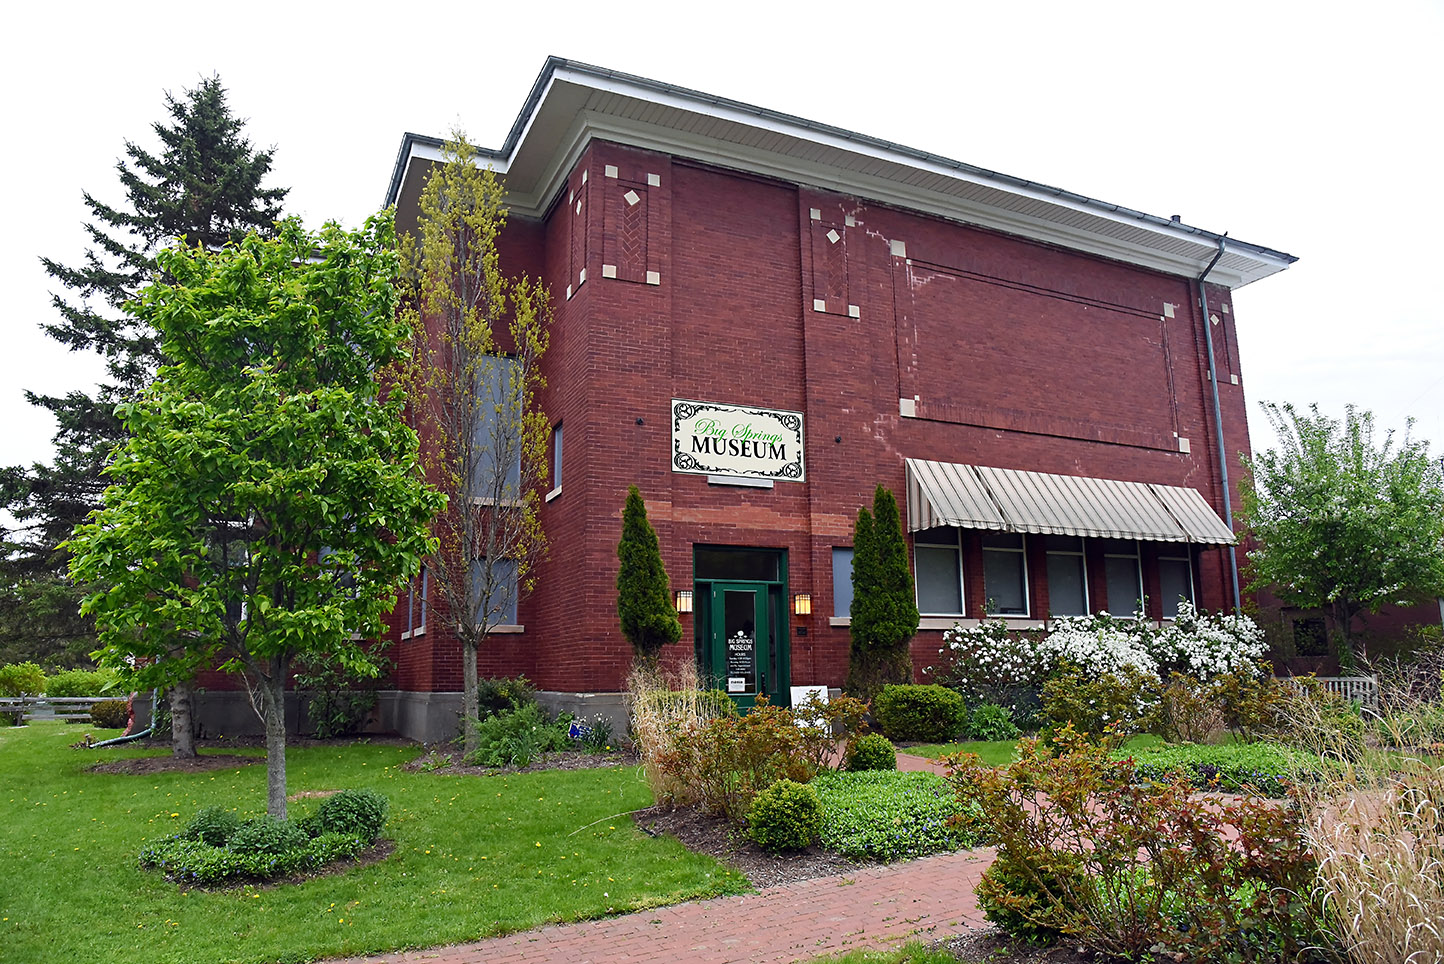 Big Springs Historical Society & Museum is located inside the former Caledonia School which was constructed in 1876.